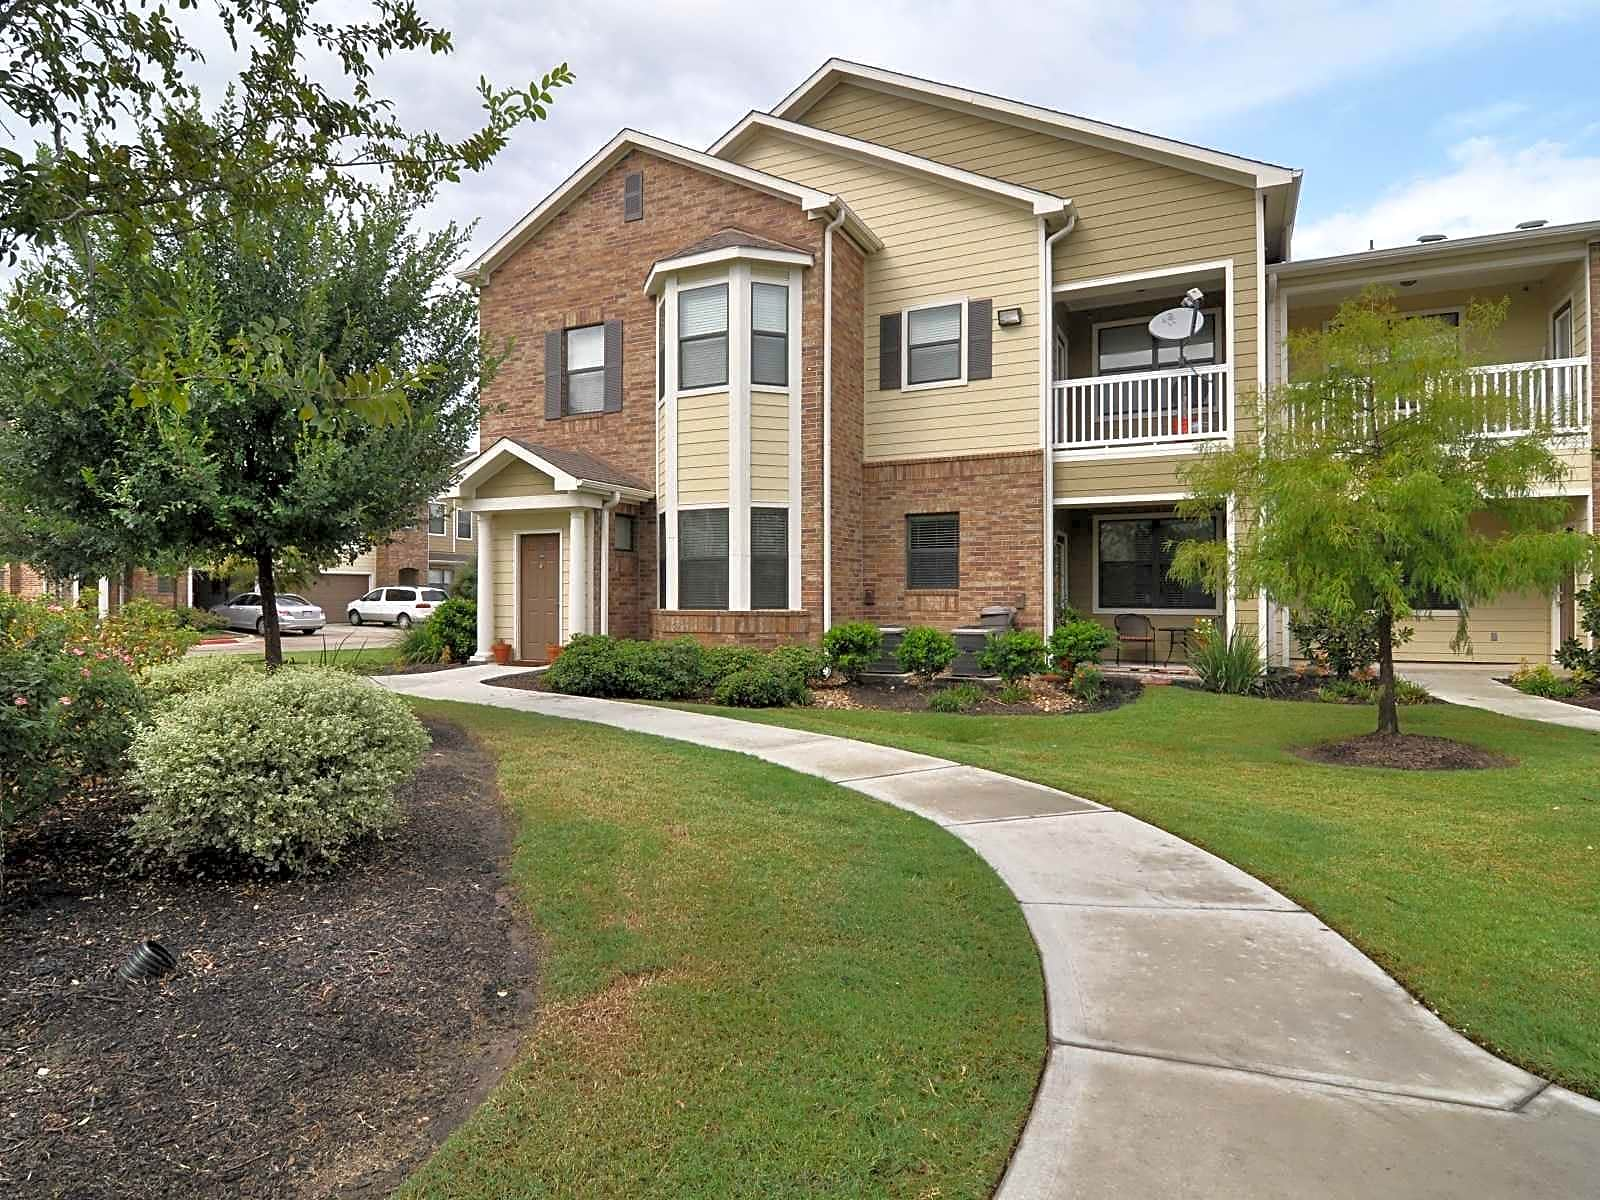 Photo: Katy Apartment for Rent - $1023.00 / month; 1 Bd & 1 Ba